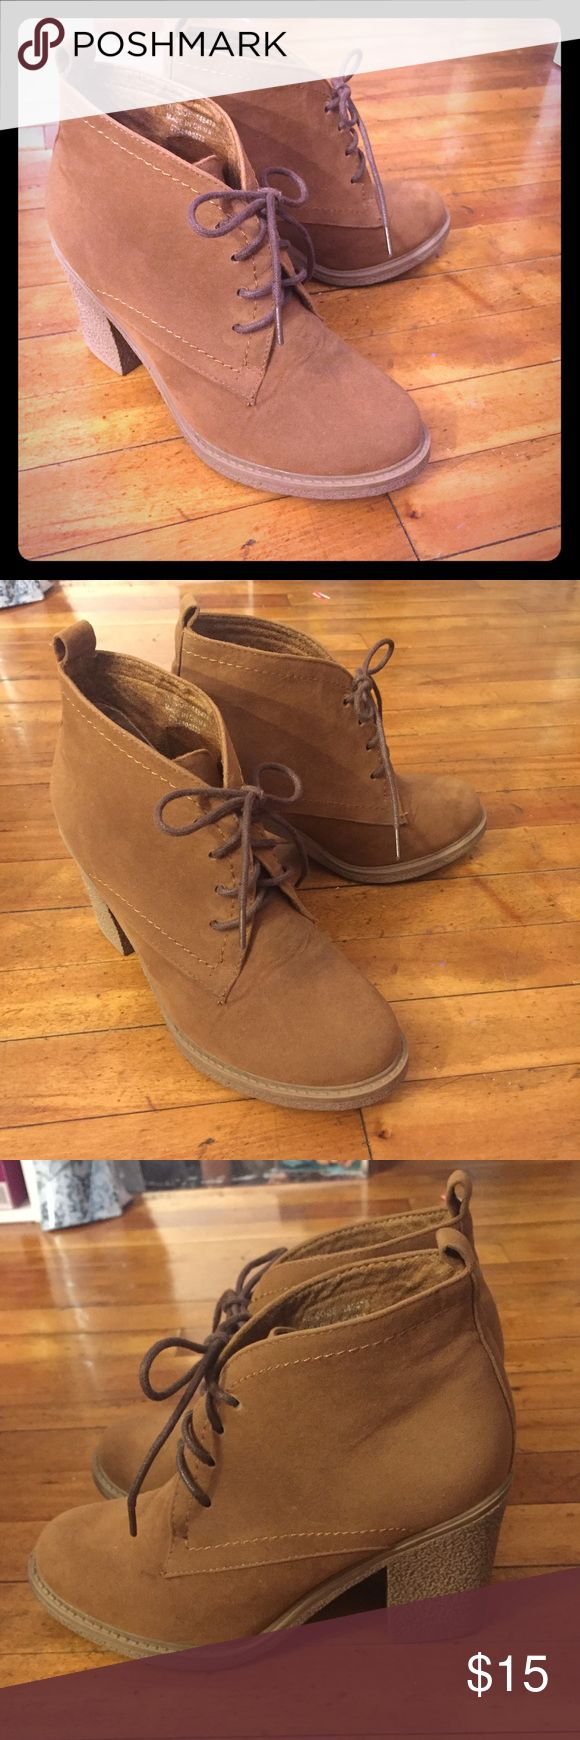 Camel/Chestnut Booties Worn 2x. Condition fair, like new. I have similar boots like these, so I won't be needing this anymore. It's super cute, comfortable, and pretty lightweight. It doesn't make too much noise when you walk. The soles on the bottom of the shoe is great quality. Price as is. No offers please. No trades also. Shoes Ankle Boots & Booties